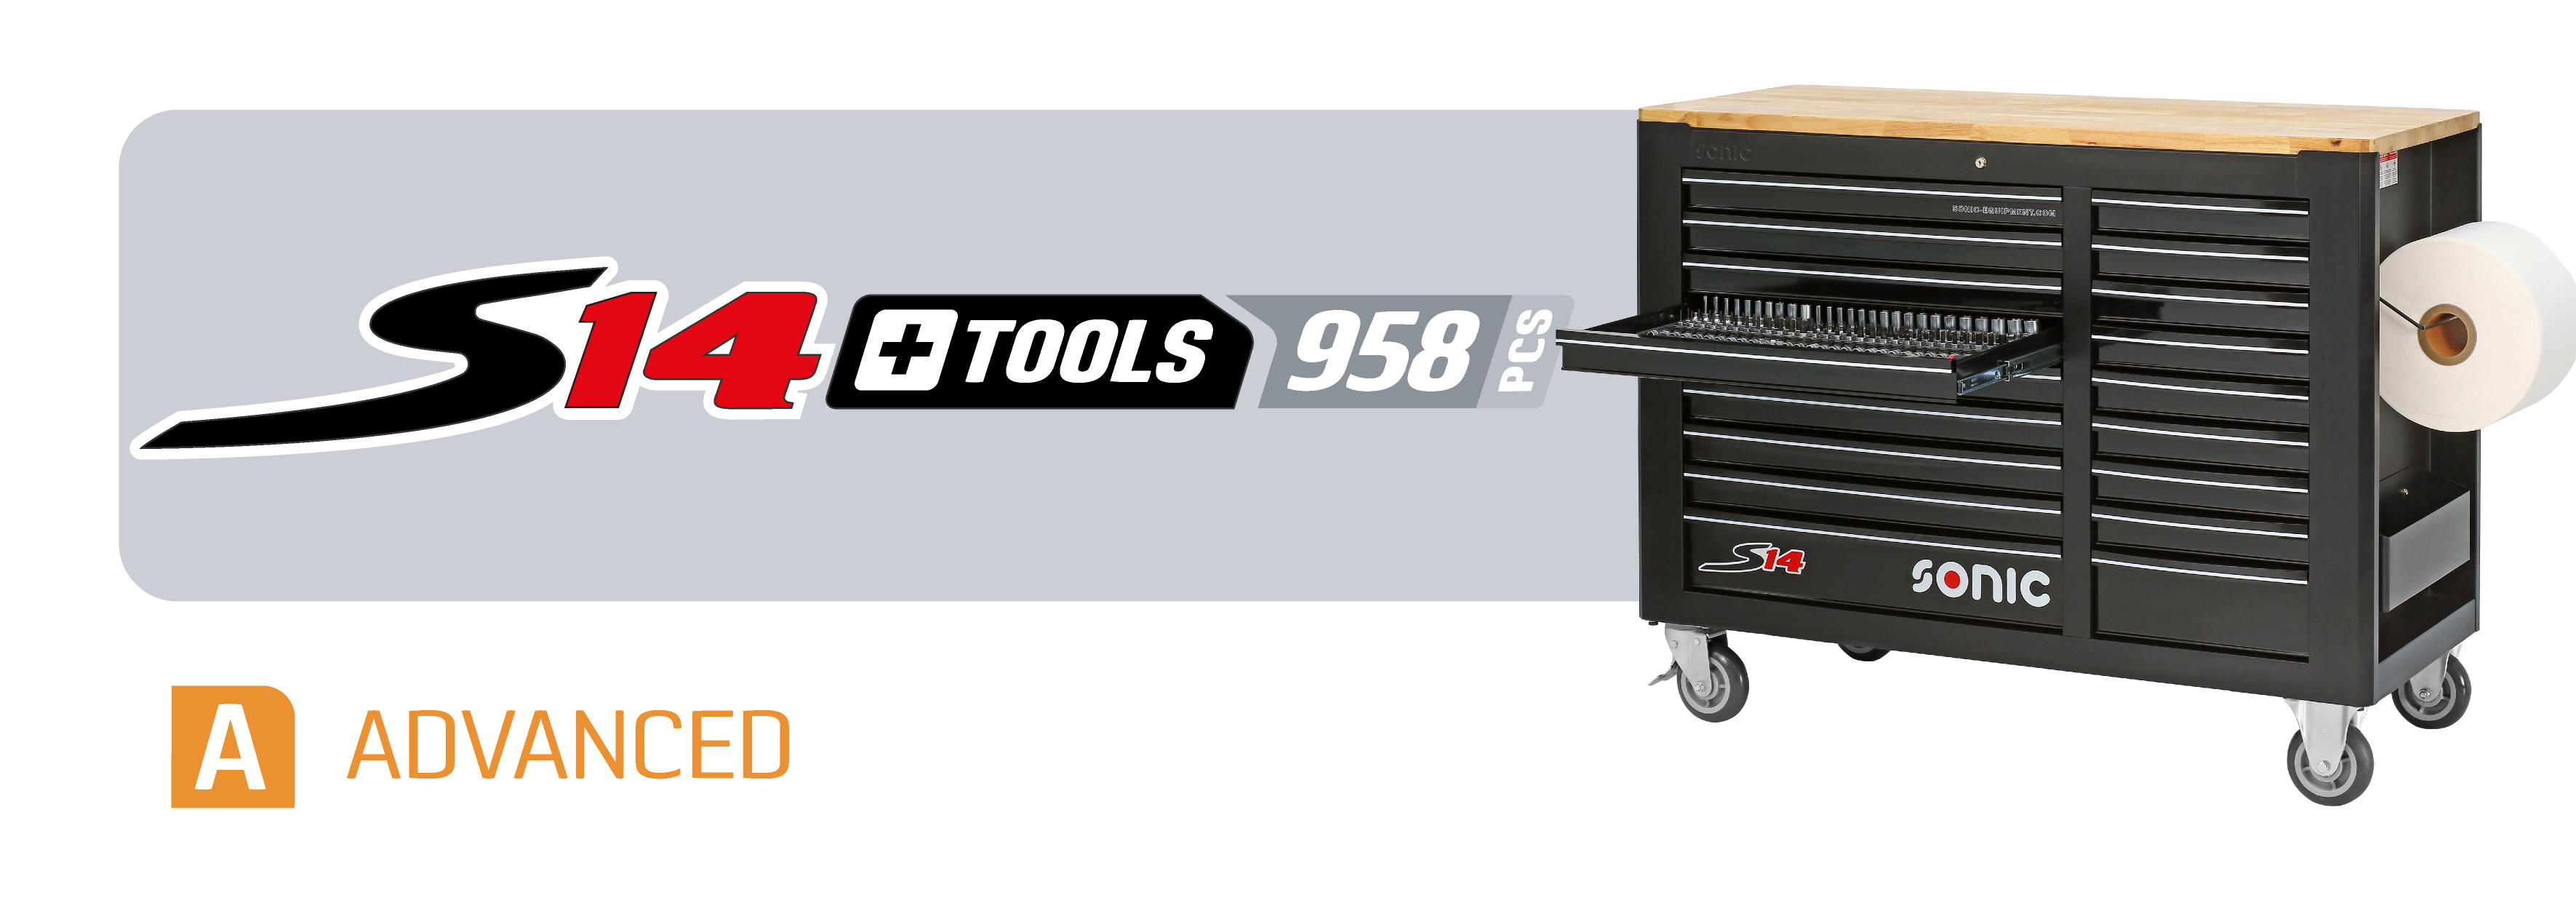 S14 toolbox with tools